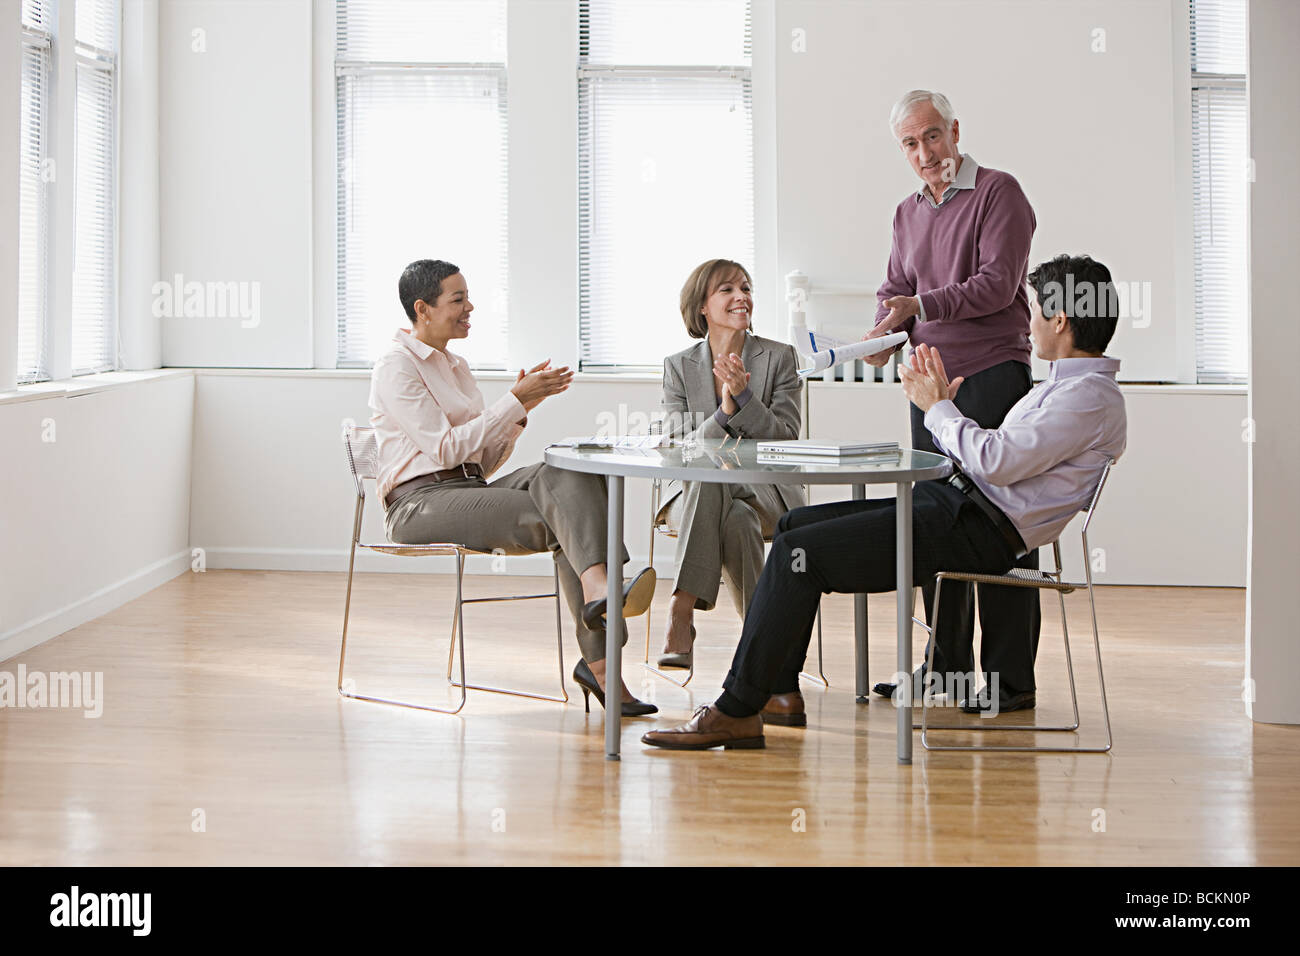 People in meeting - Stock Image